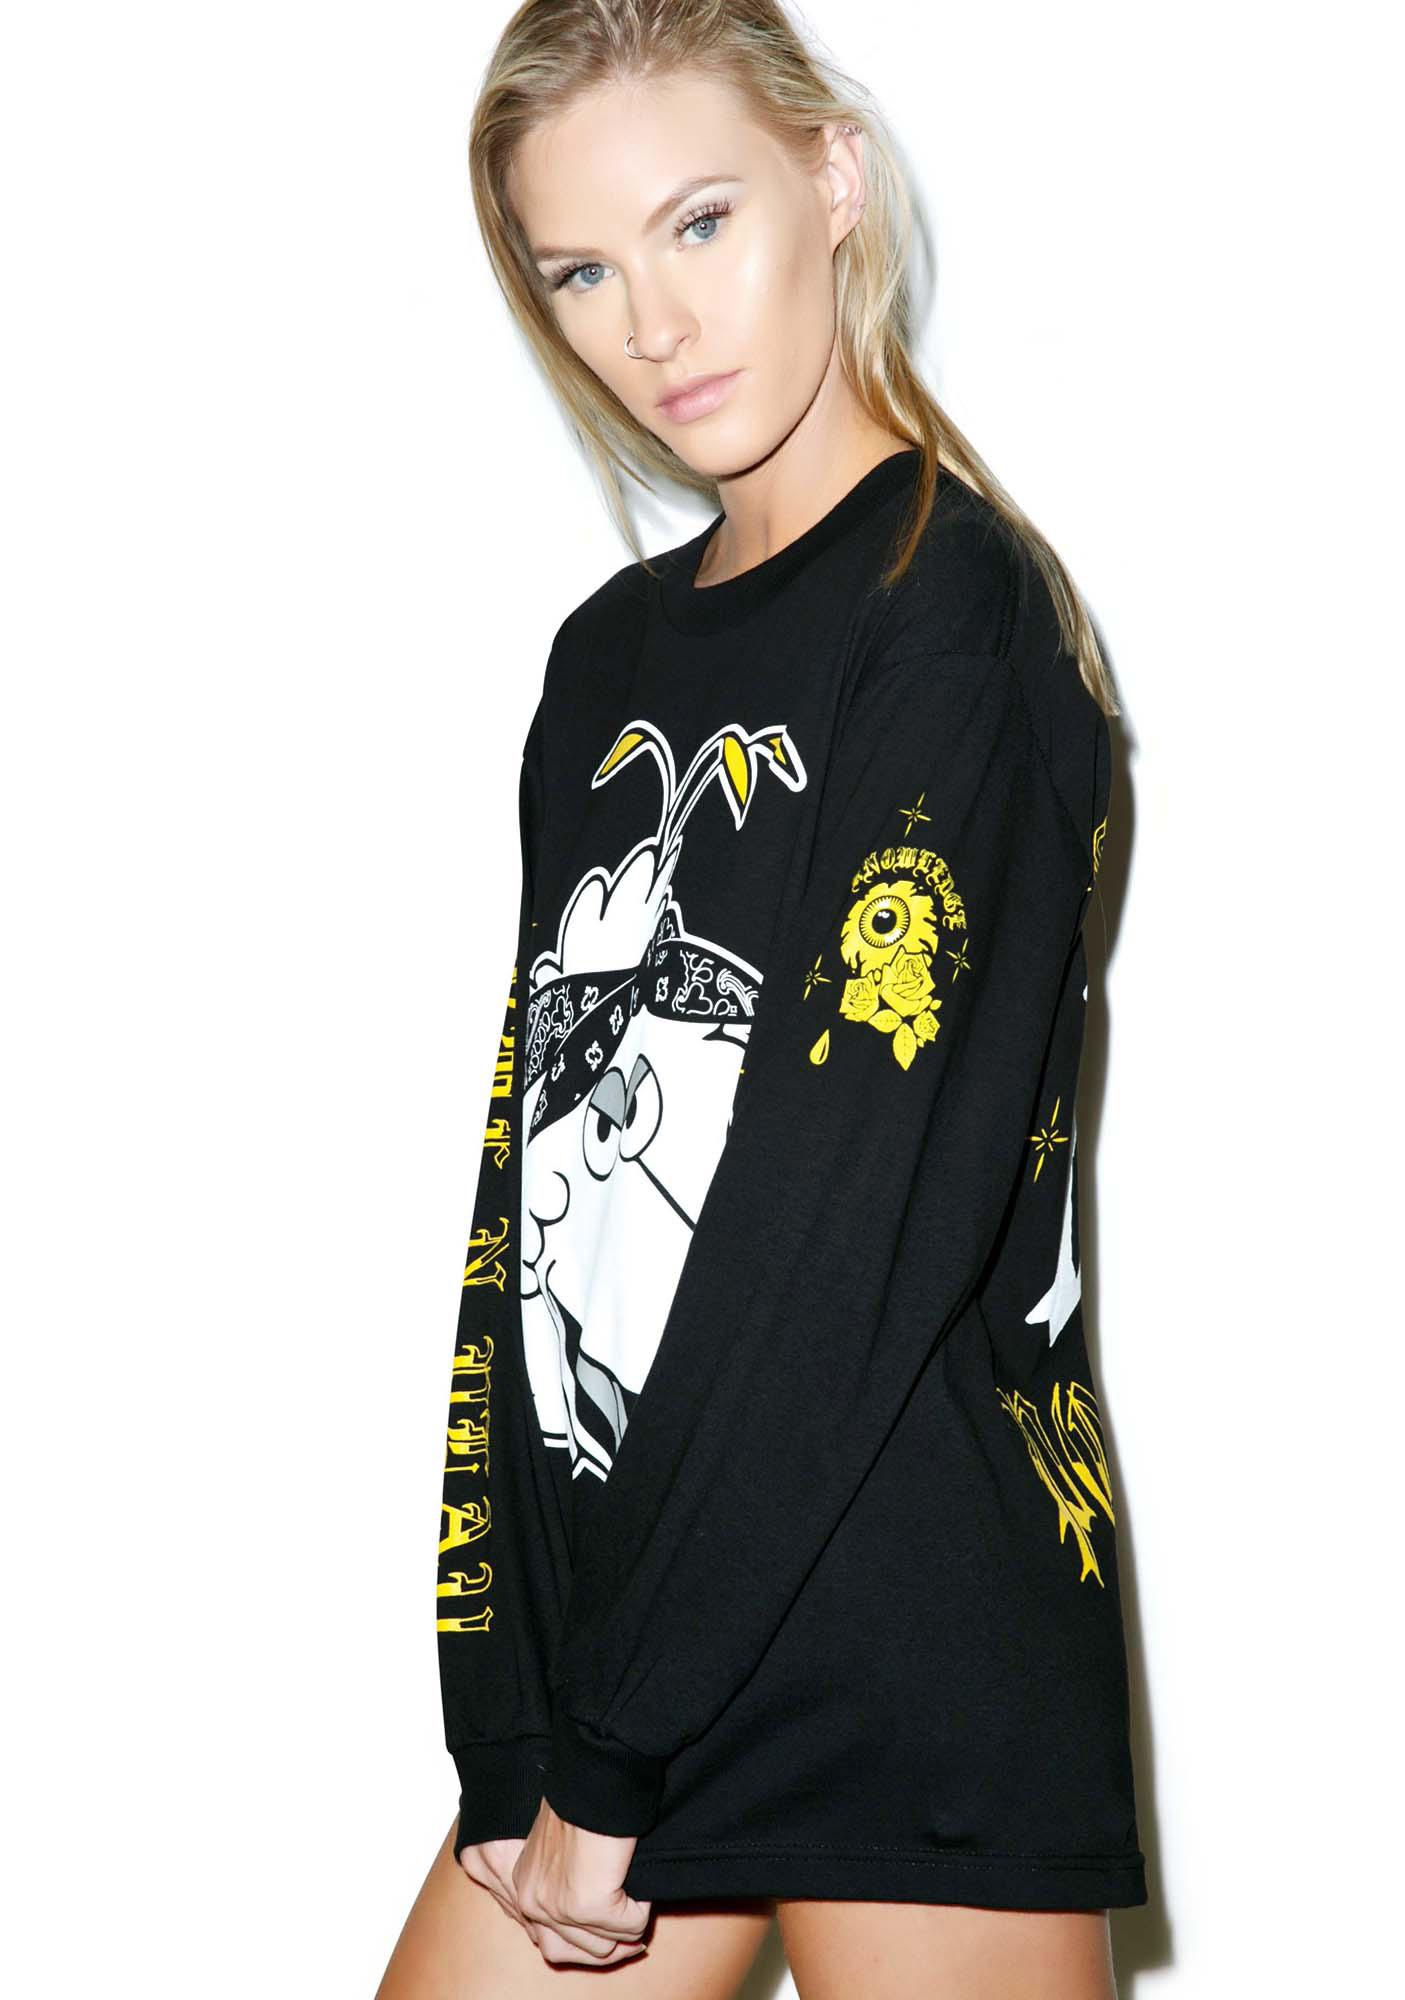 Mishka Big Bird Long Sleeve Tee